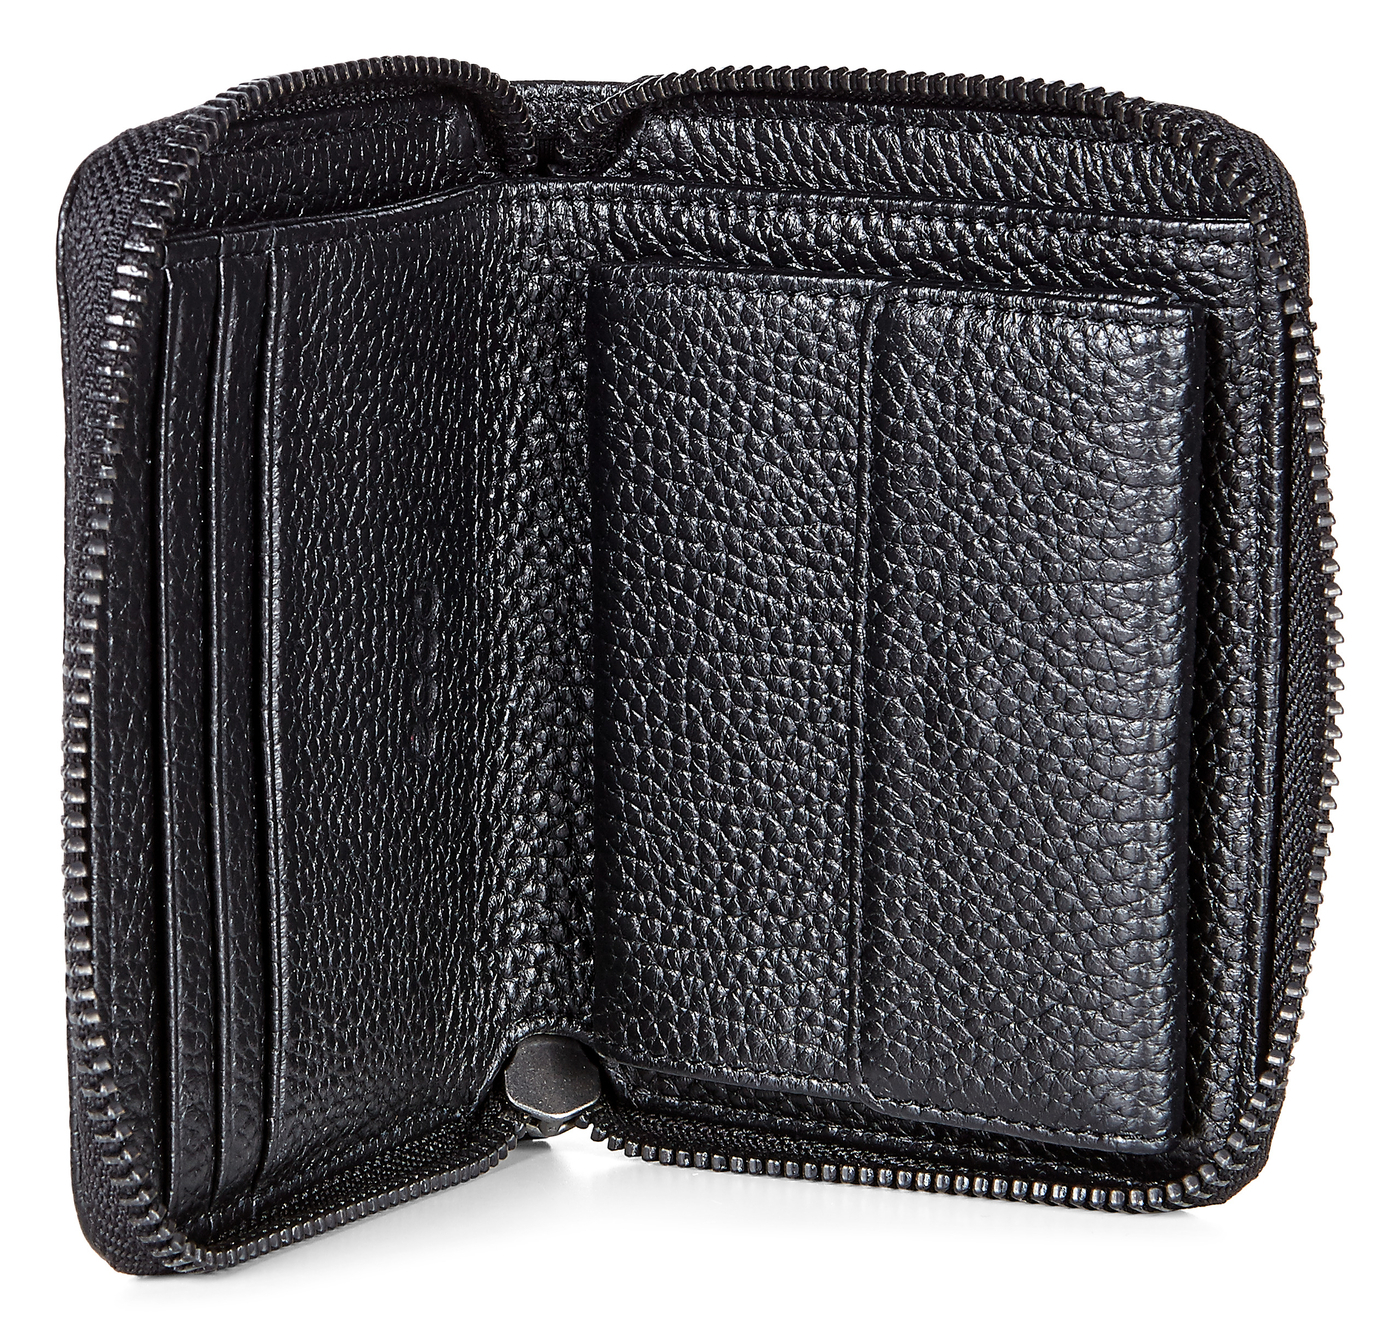 ECCO SP 2 Medium Zip Wallet